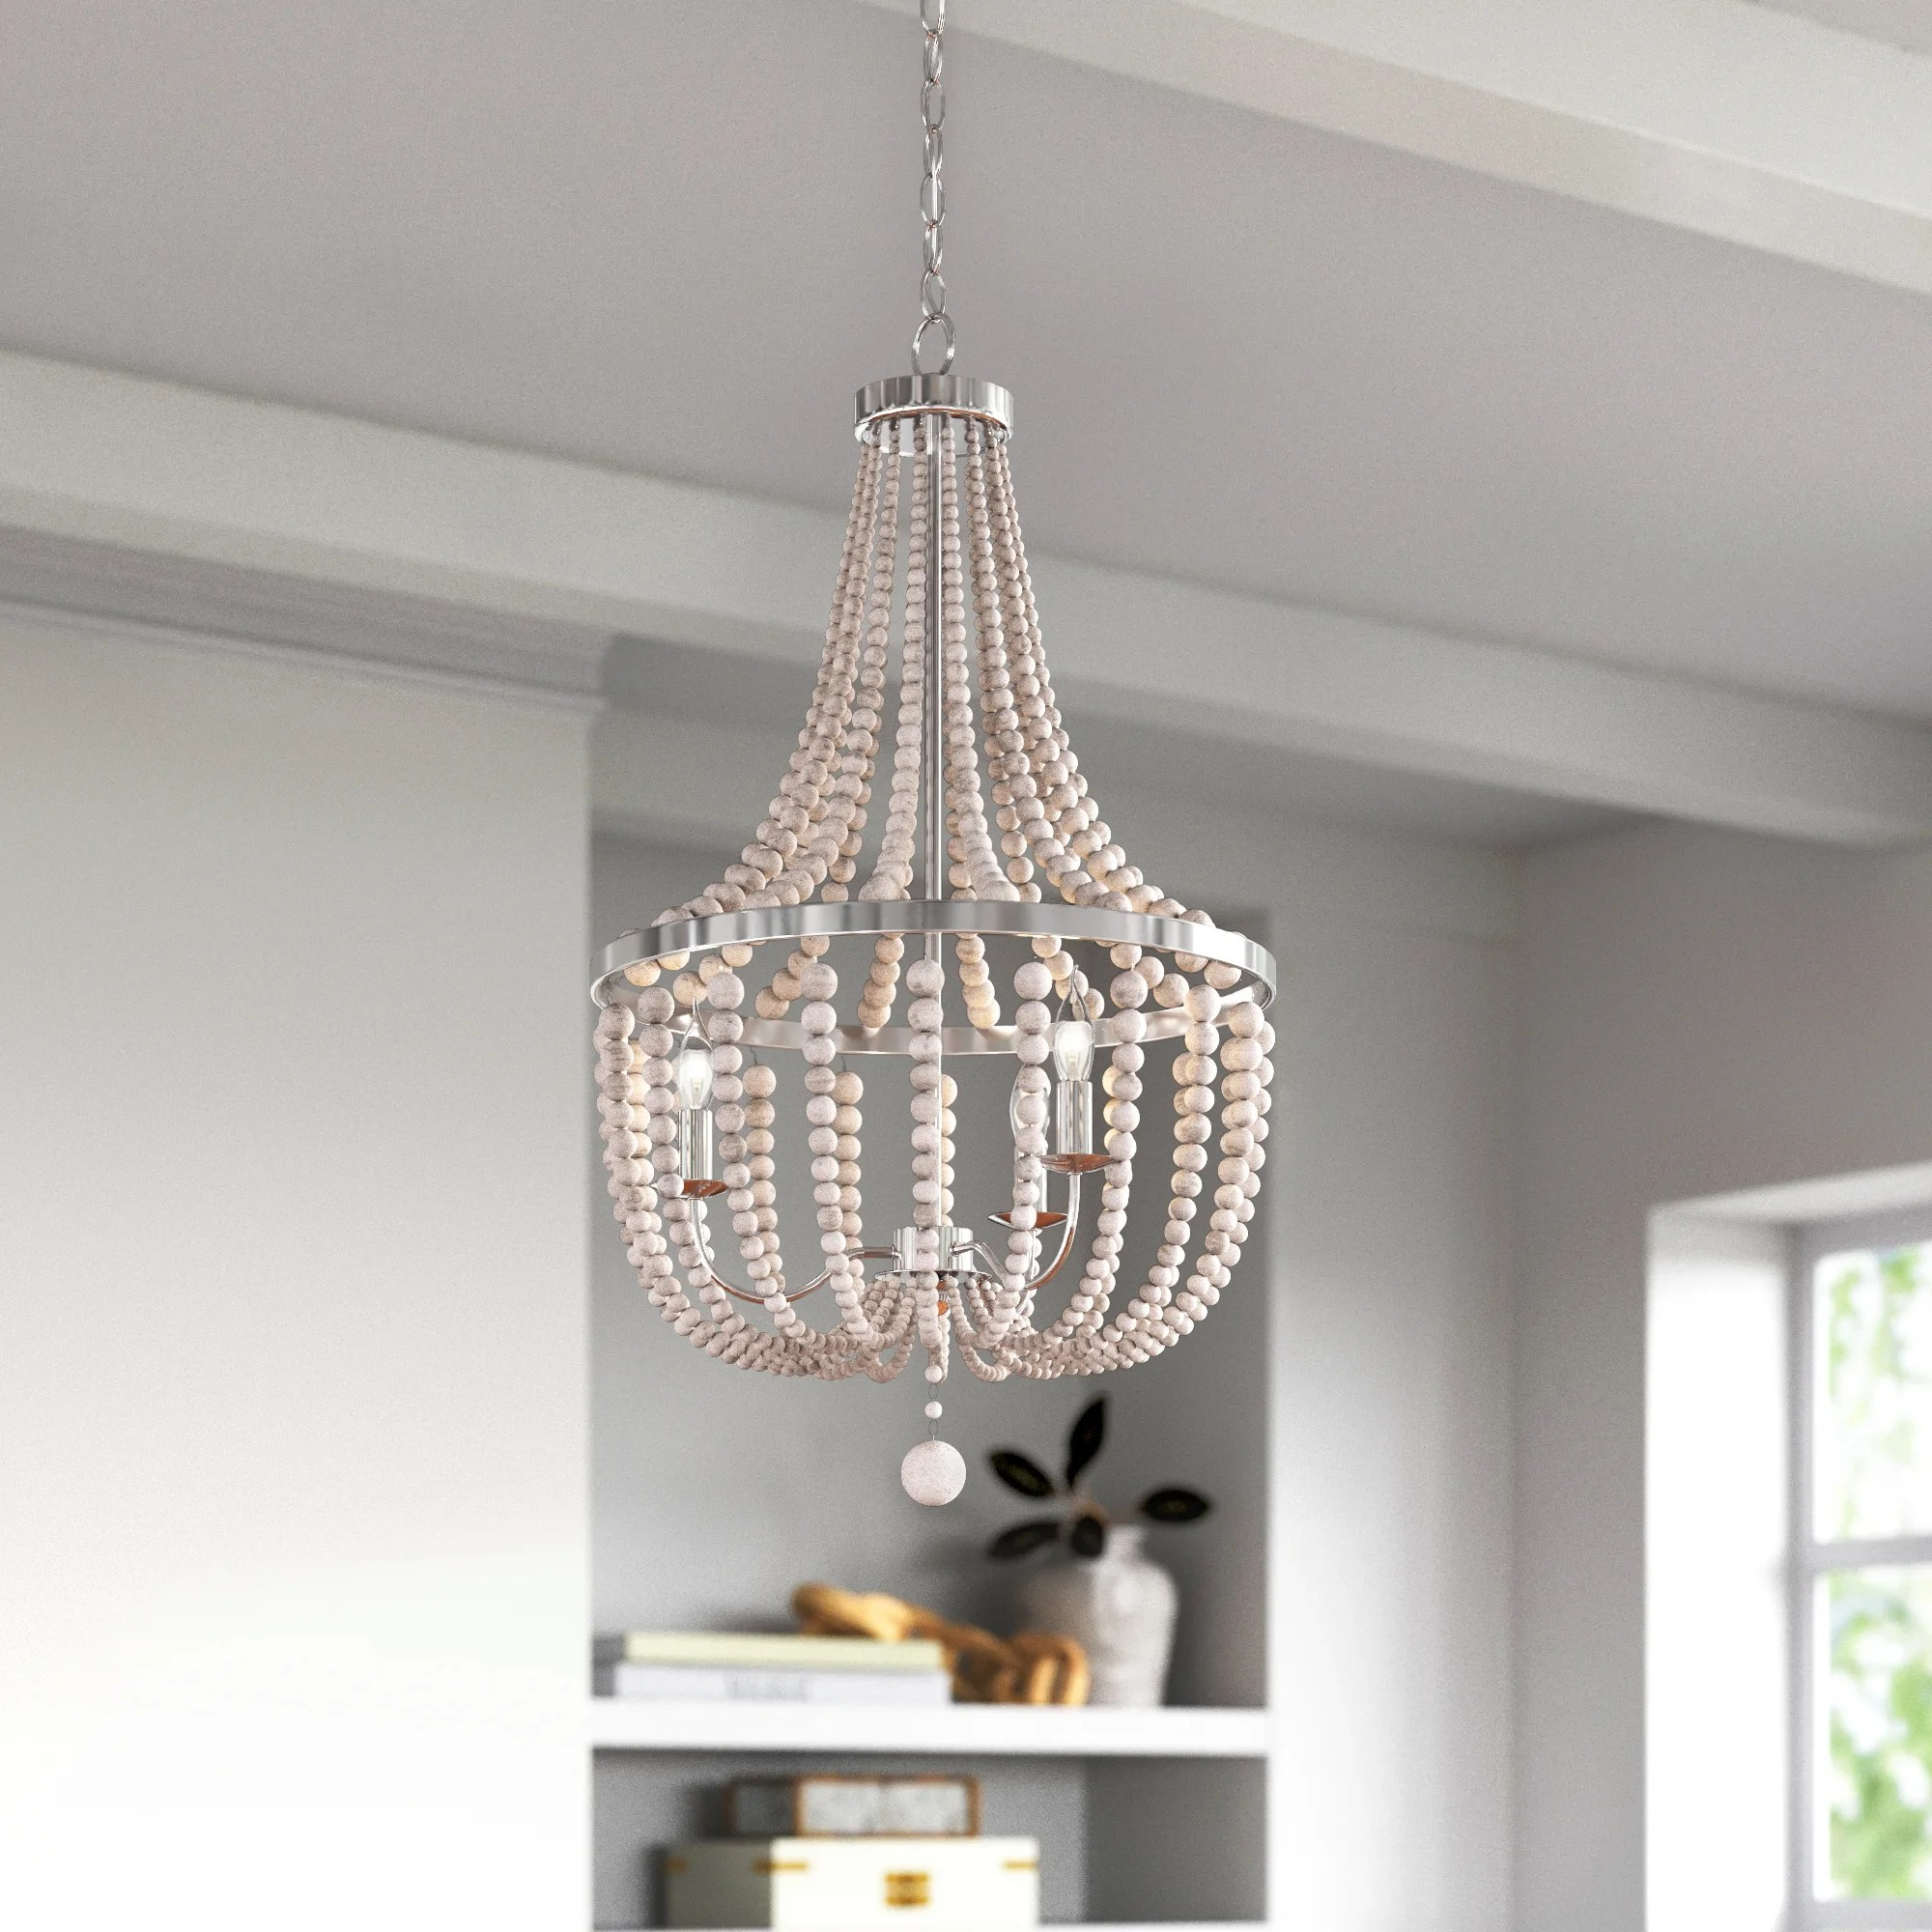 Gold Finish Chandeliers Free Shipping Over 35 Wayfair